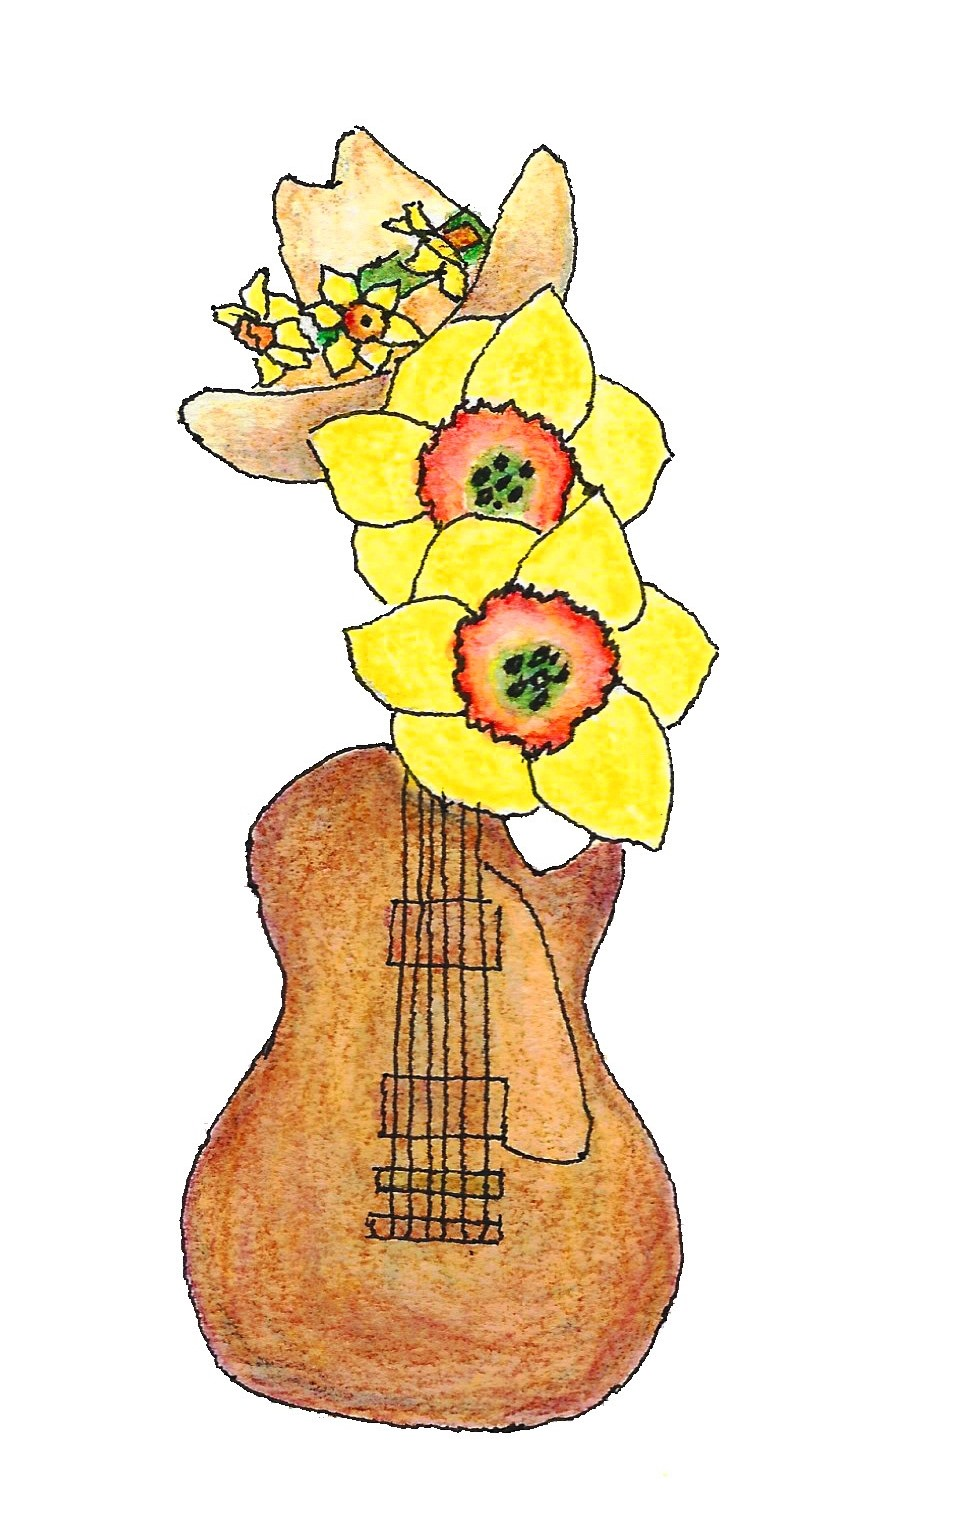 ADS 2018 logo of guitar with daffodils